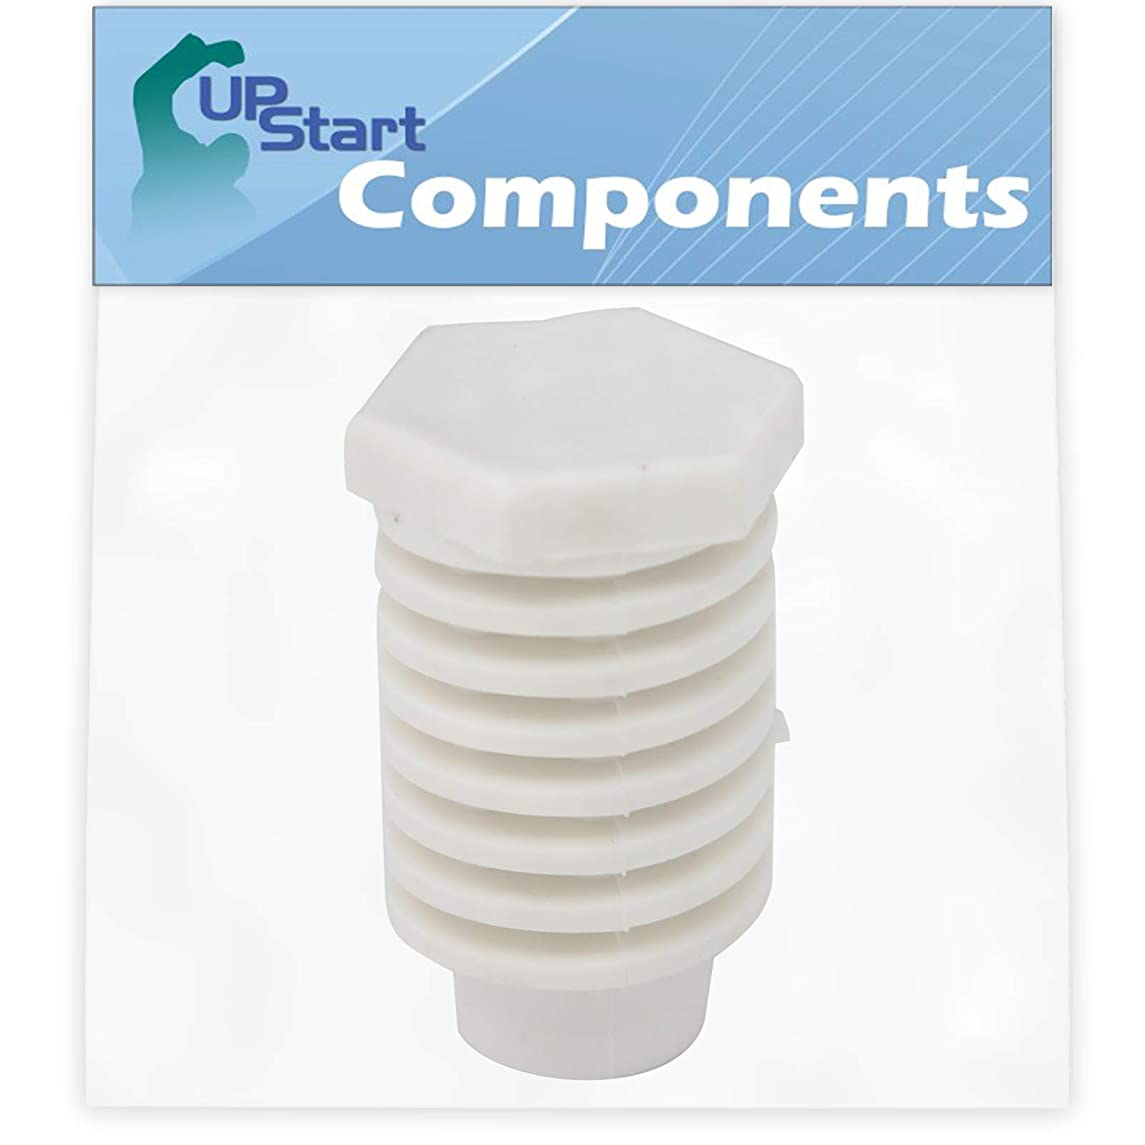 49621 Leveling Foot Replacement for Kenmore/Sears 11060924990 Dryer - Compatible with 49621 Dryer Leveling Leg Foot - UpStart Components Brand